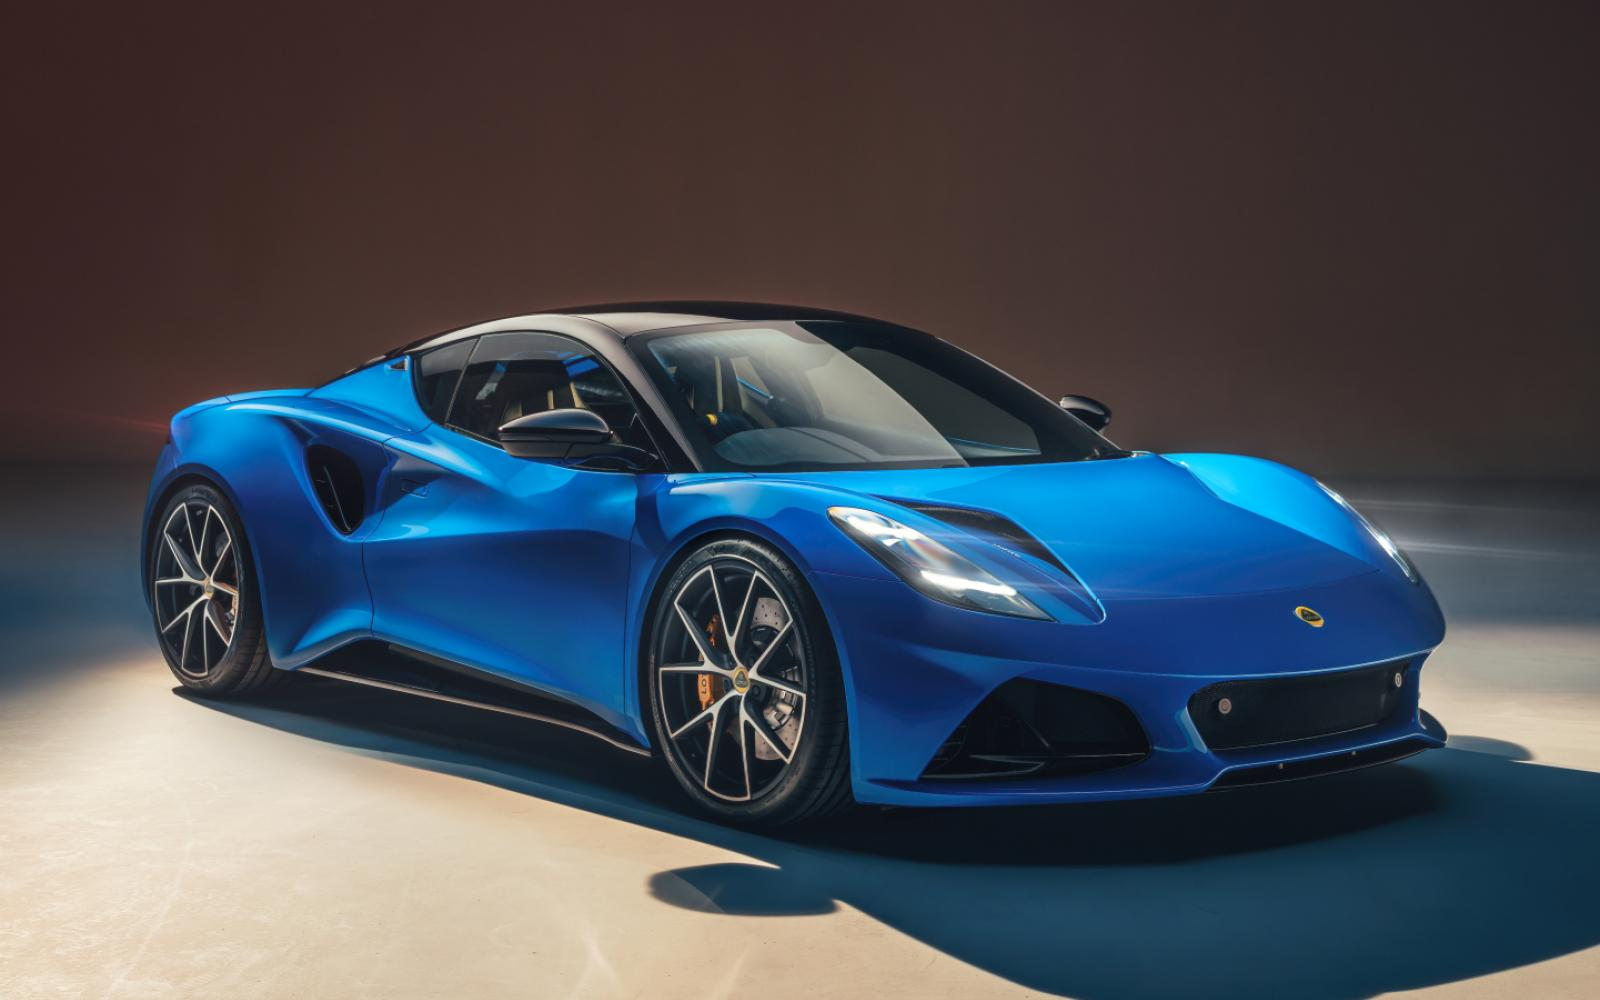 Top and flop: The good and bad car news of week 27